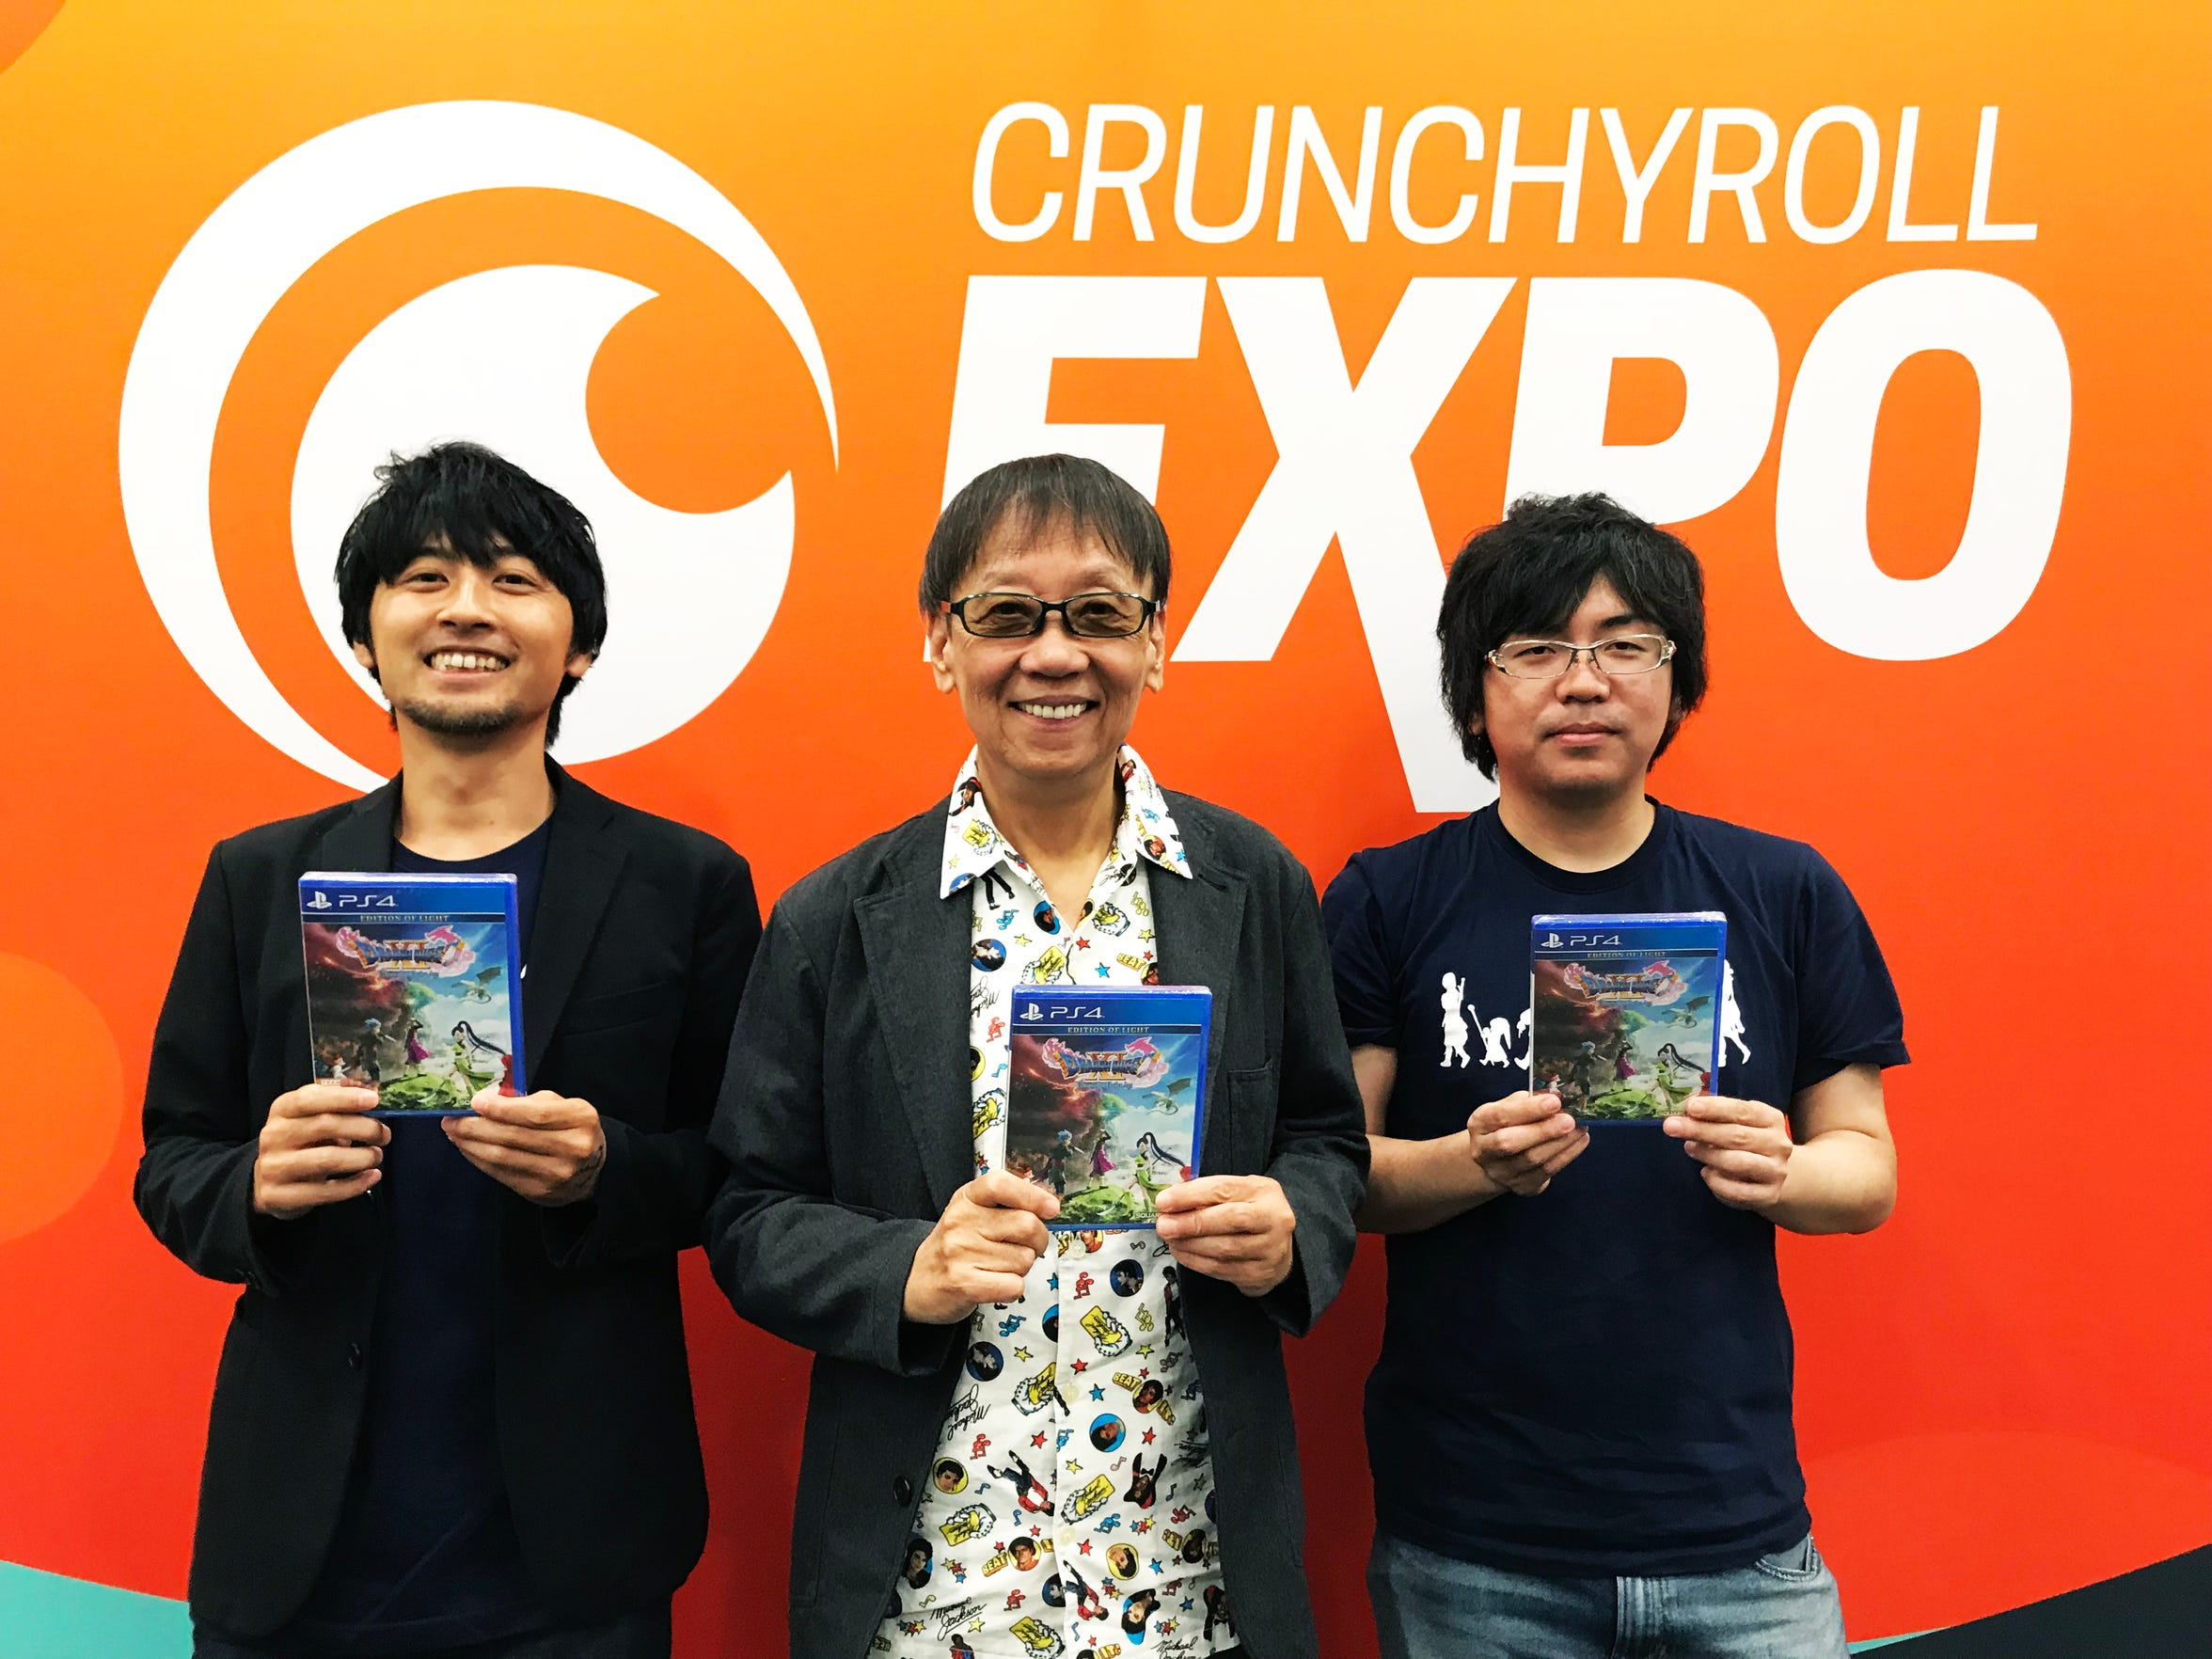 Dragon Quest XI director Takeshi Uchikawa (from left), series creator Yuji Horii and producer Hokuto Okamoto pose with copies of the game after an interview at Crunchyroll Expo 2018 on Sept. 3, 2018 in San Jose, Calif.